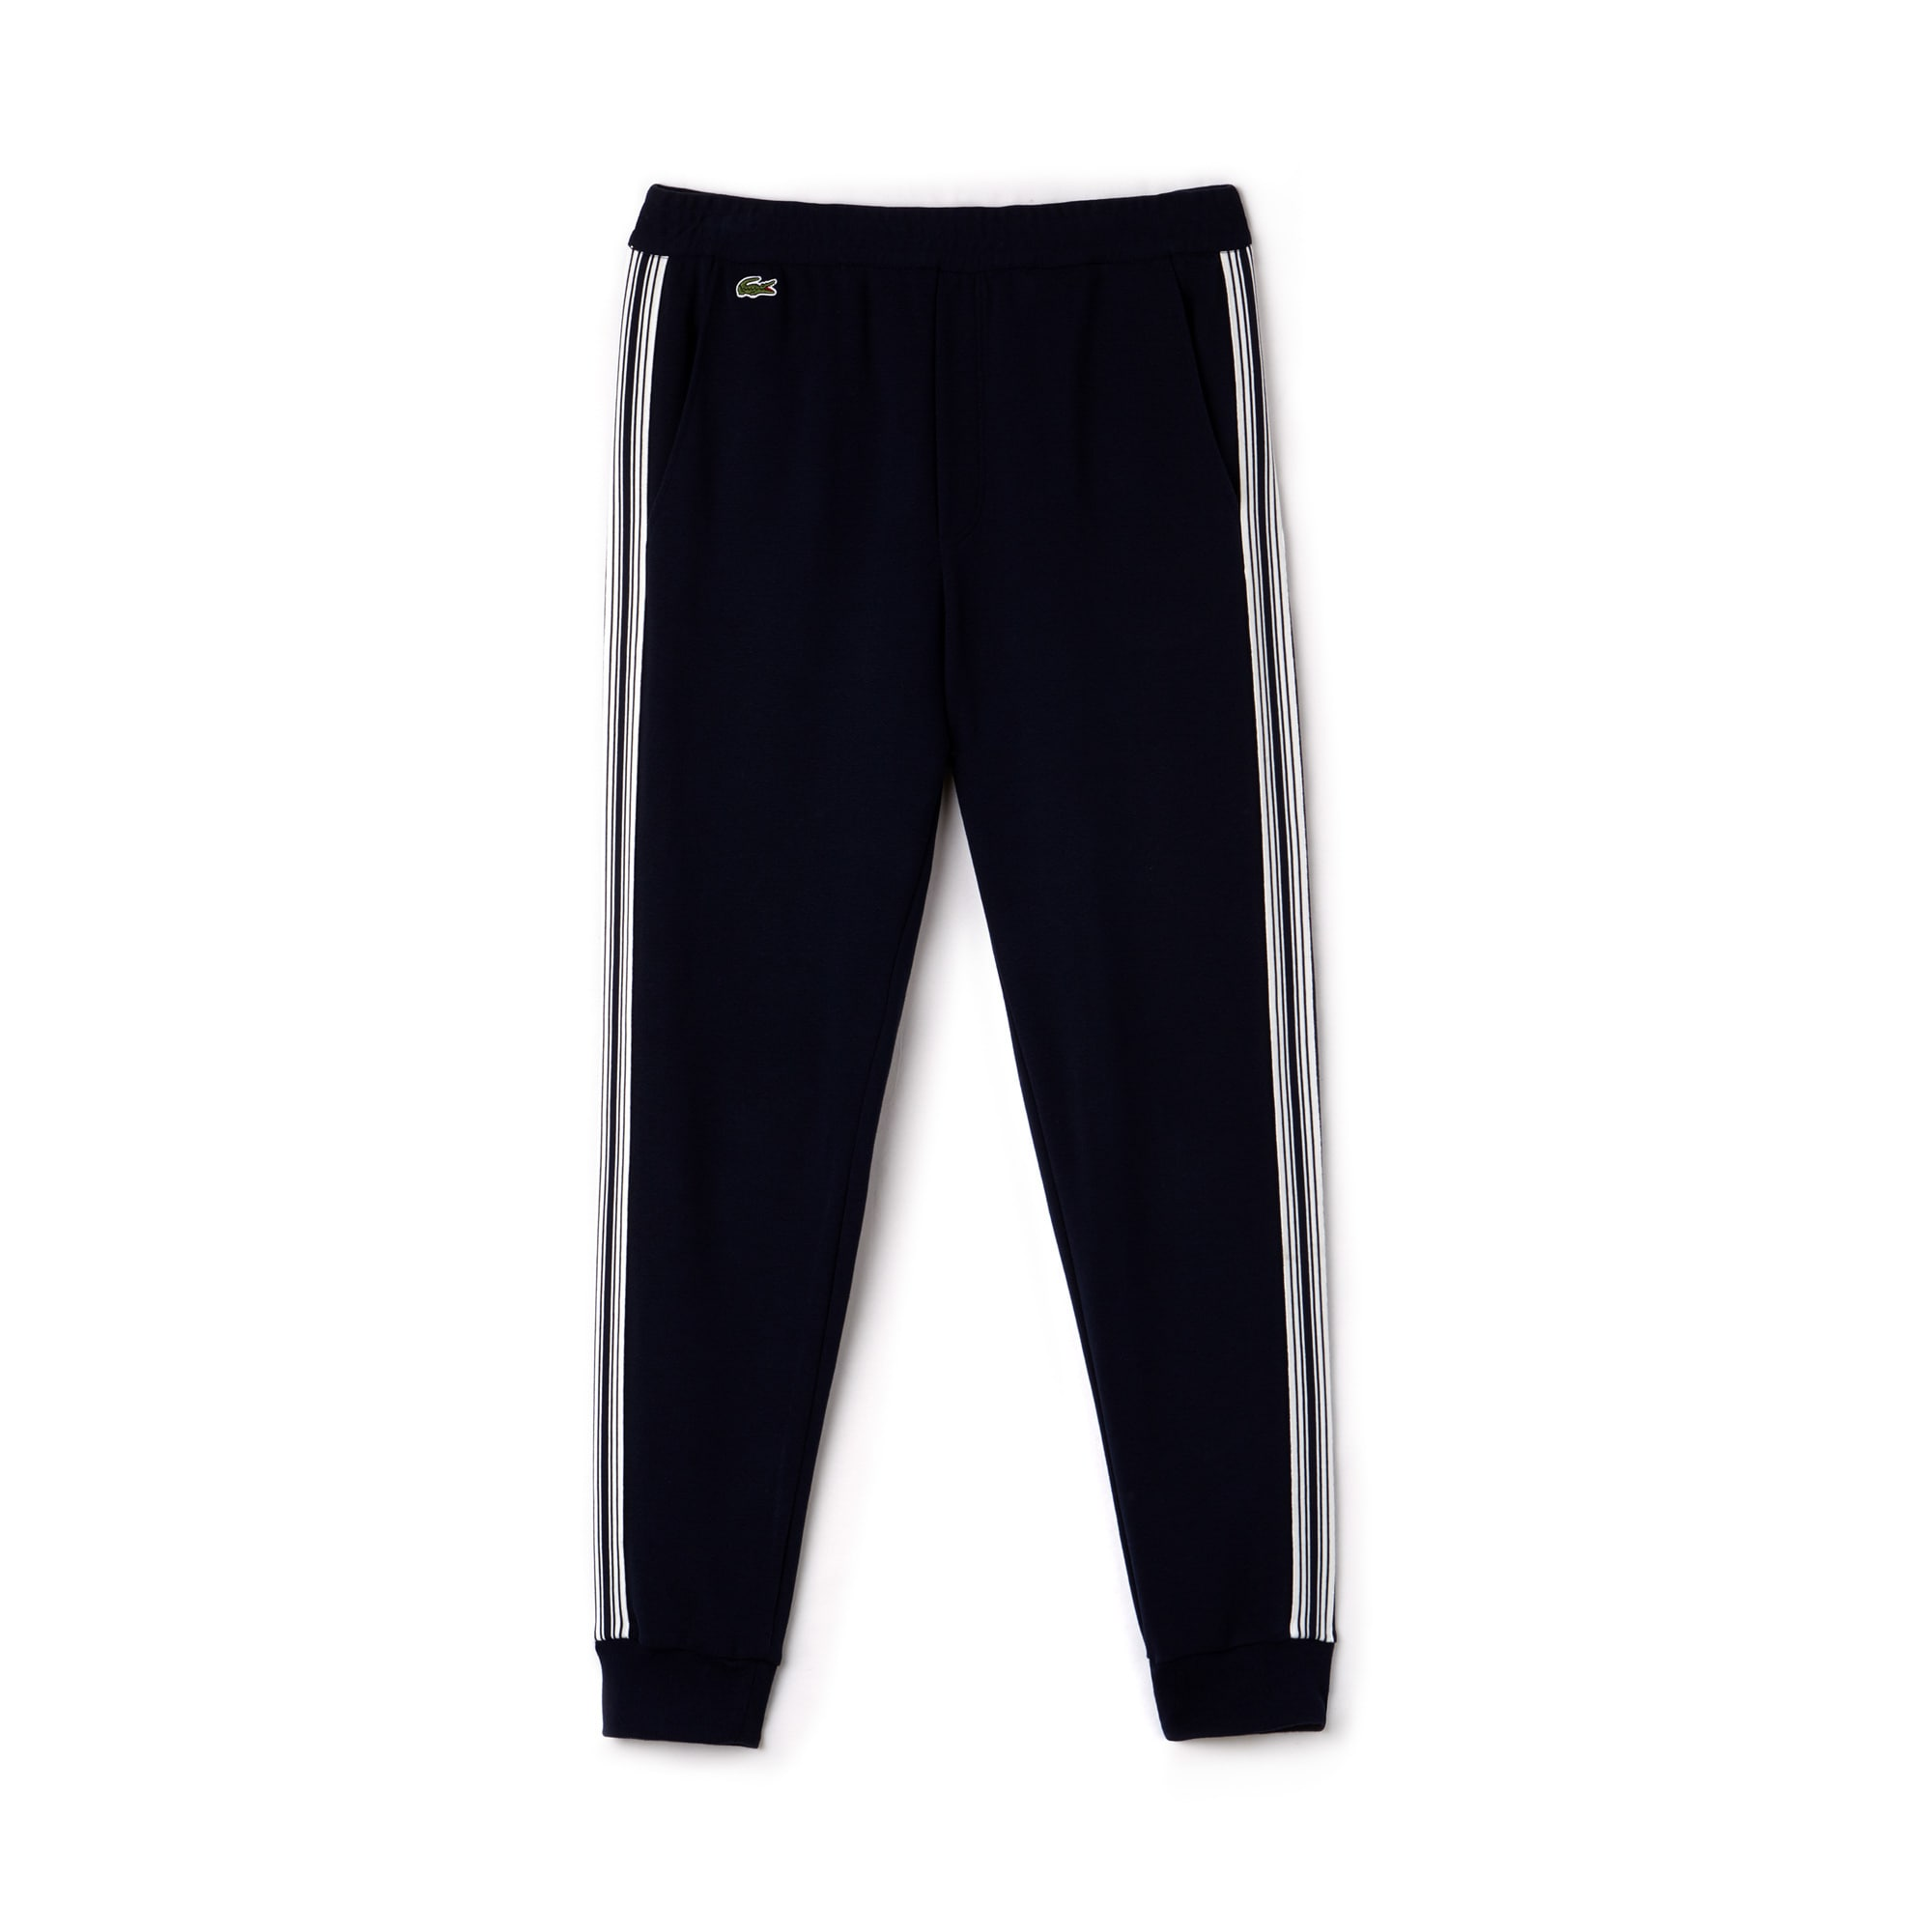 Men's Contrast Bands Milano Cotton Urban Jogging Pants